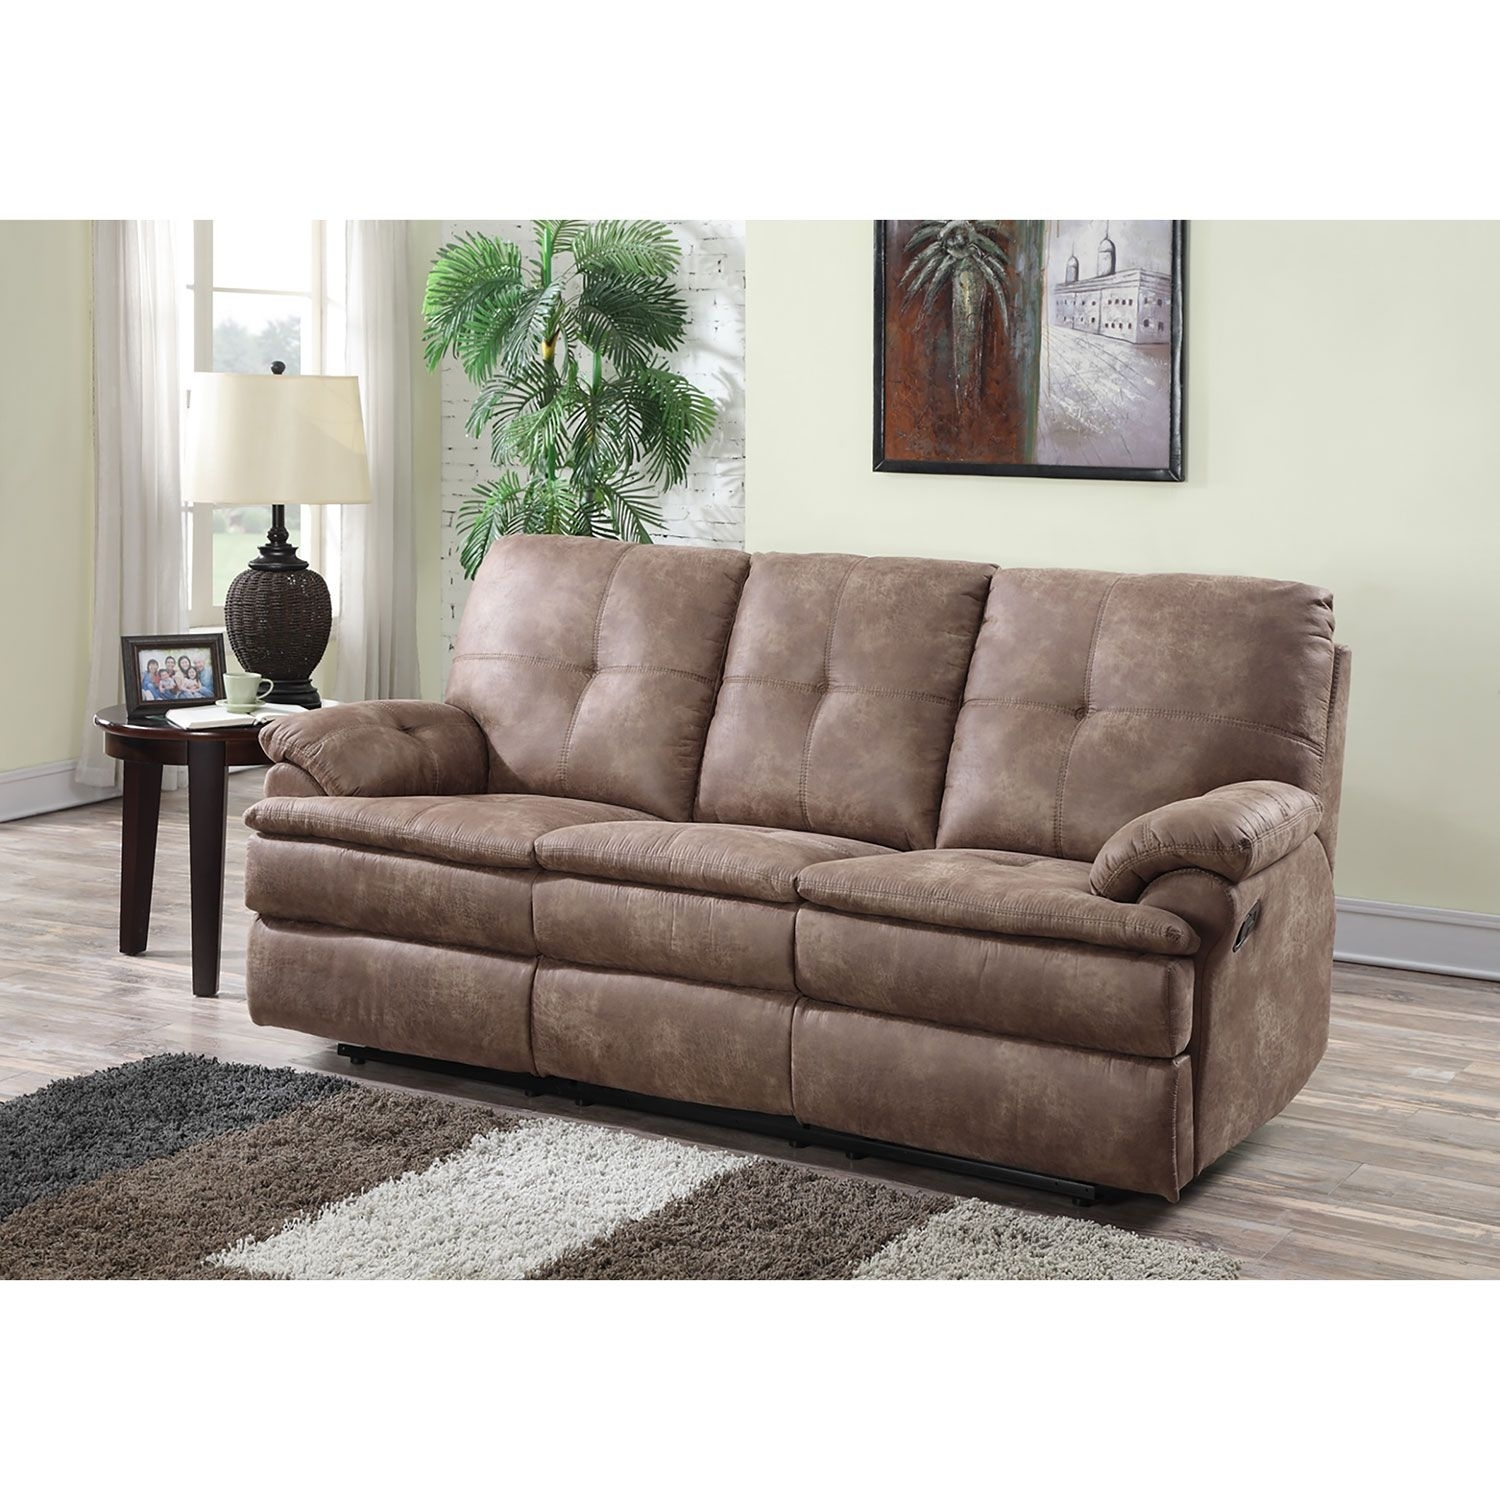 Buck Fabric Reclining Sofa – Sam's Club | Home Furniture Ideas For Sectional Sofas At Sam's Club (View 6 of 10)